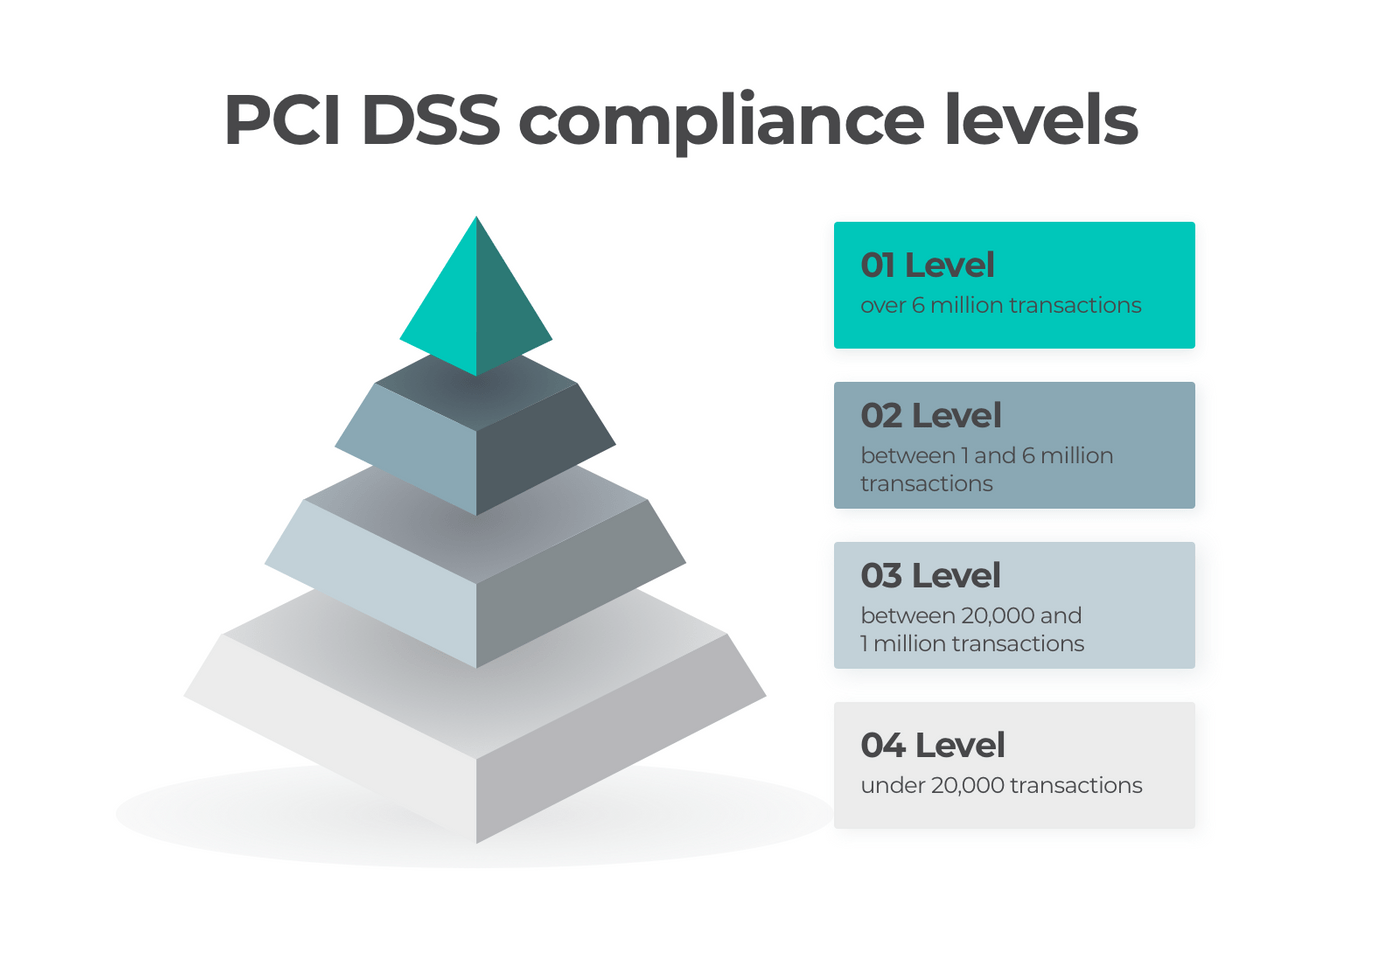 4 levels of PCI DSS compliance